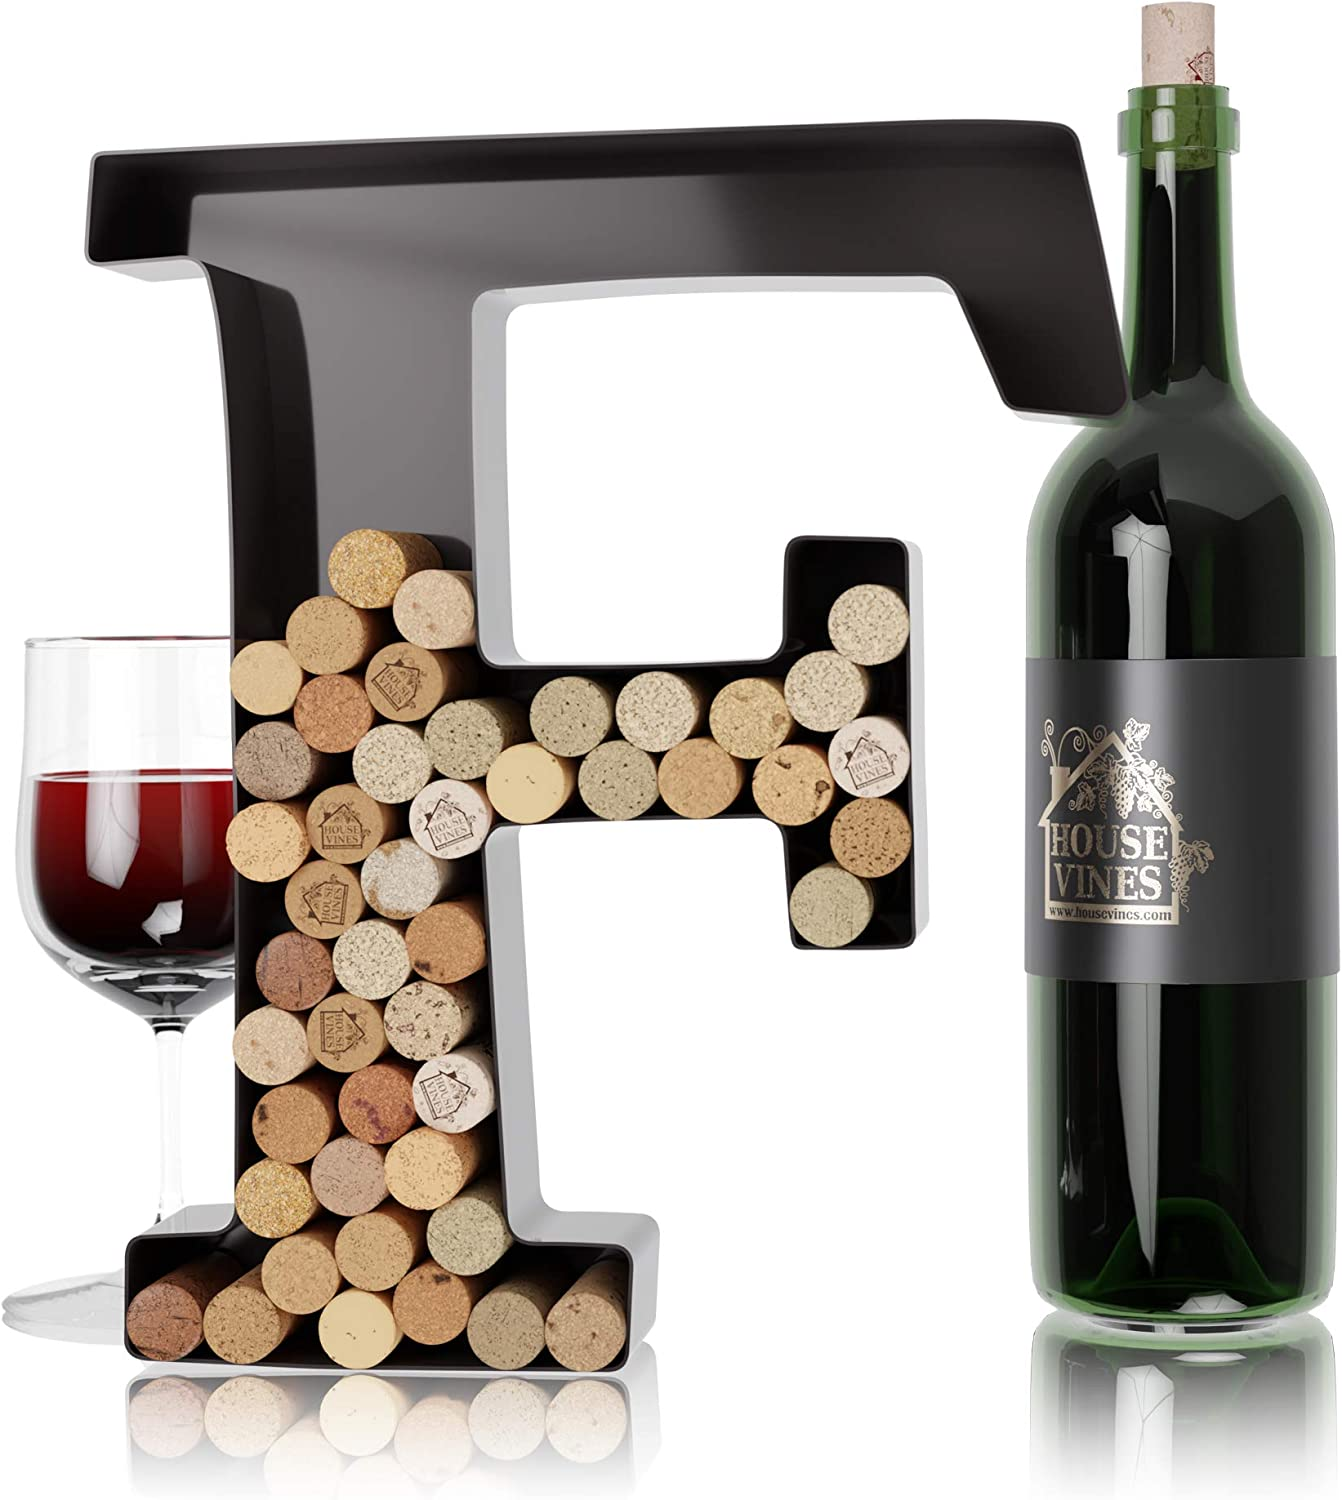 Wine Letter Cork Holder Art Wall Décor ~ Metal Letter Wine Cork Holder Monogram ~ Individual Wine Letter Cork Holders A Thru Z ~ Gifts for Wine Lovers ~ by HouseVines (F)